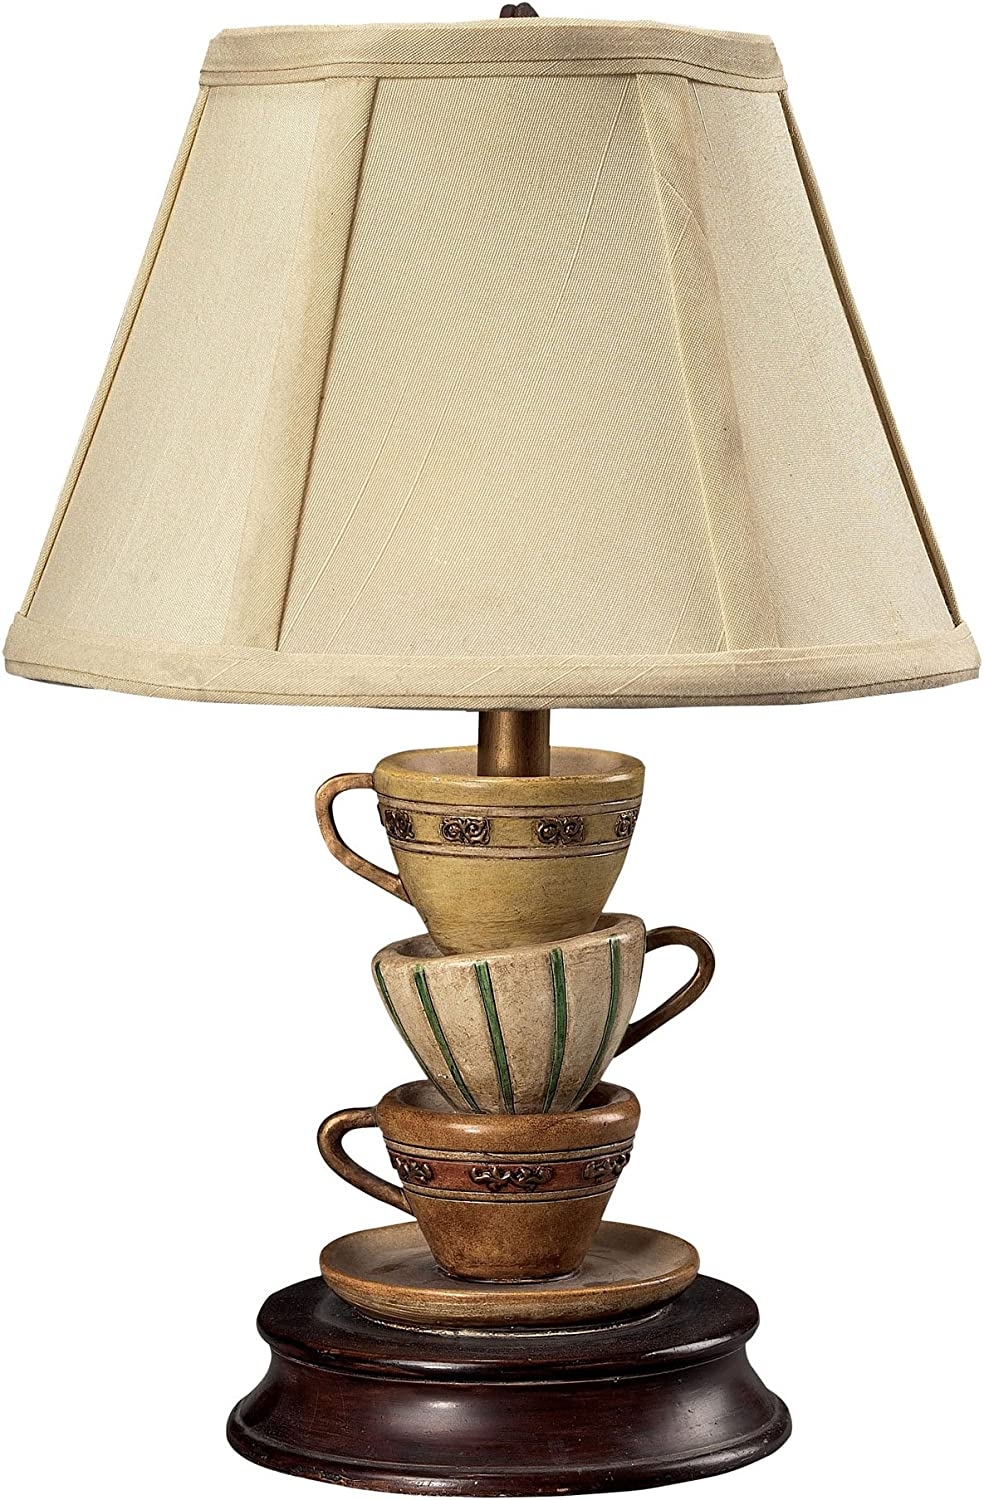 Sterling 93-10013 Composite Stacked Tea Cups Accent Table Lamp, 8 by 13-Inch